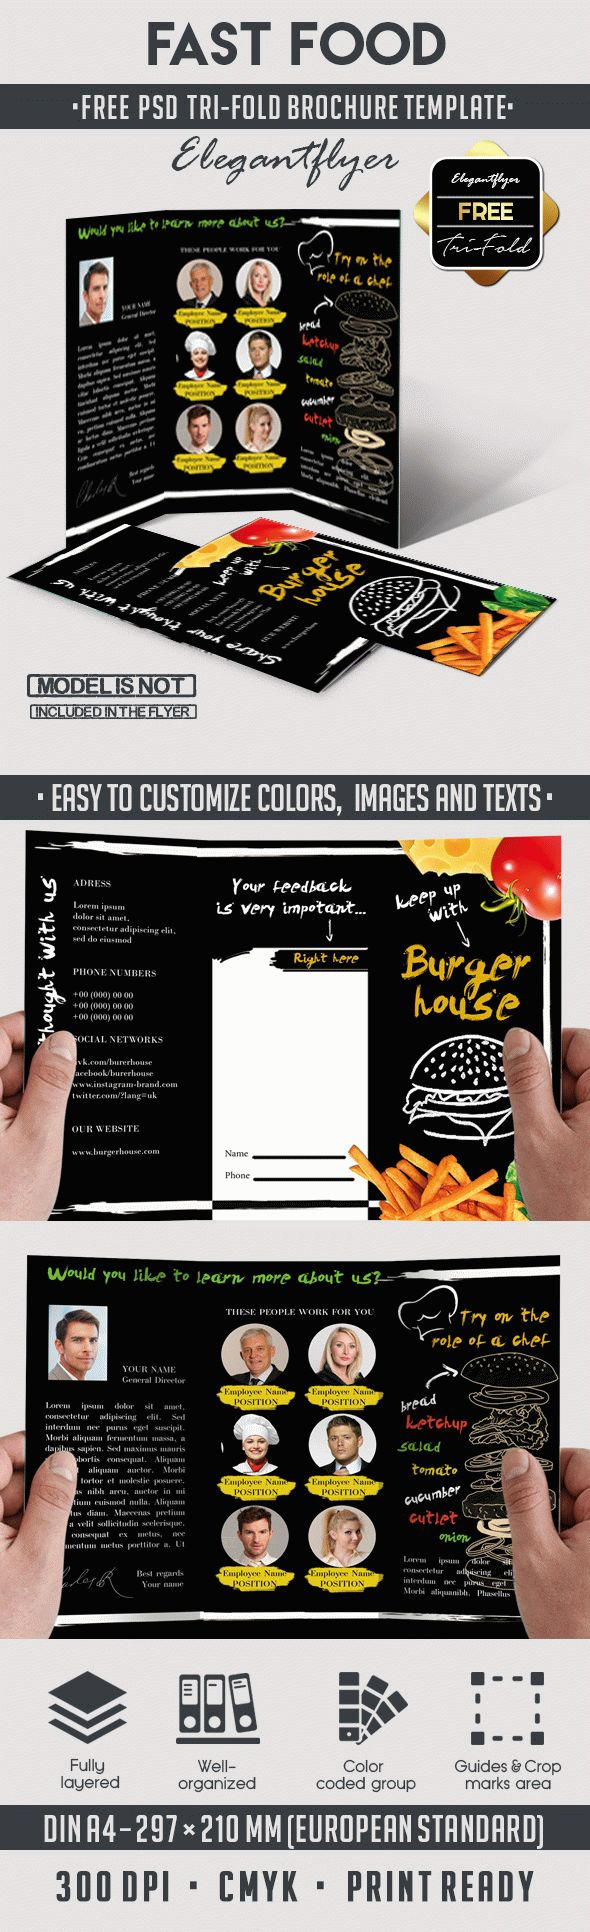 Fast Food Free TriFold Brochure PSD Template By ElegantFlyer - Brochure photoshop template